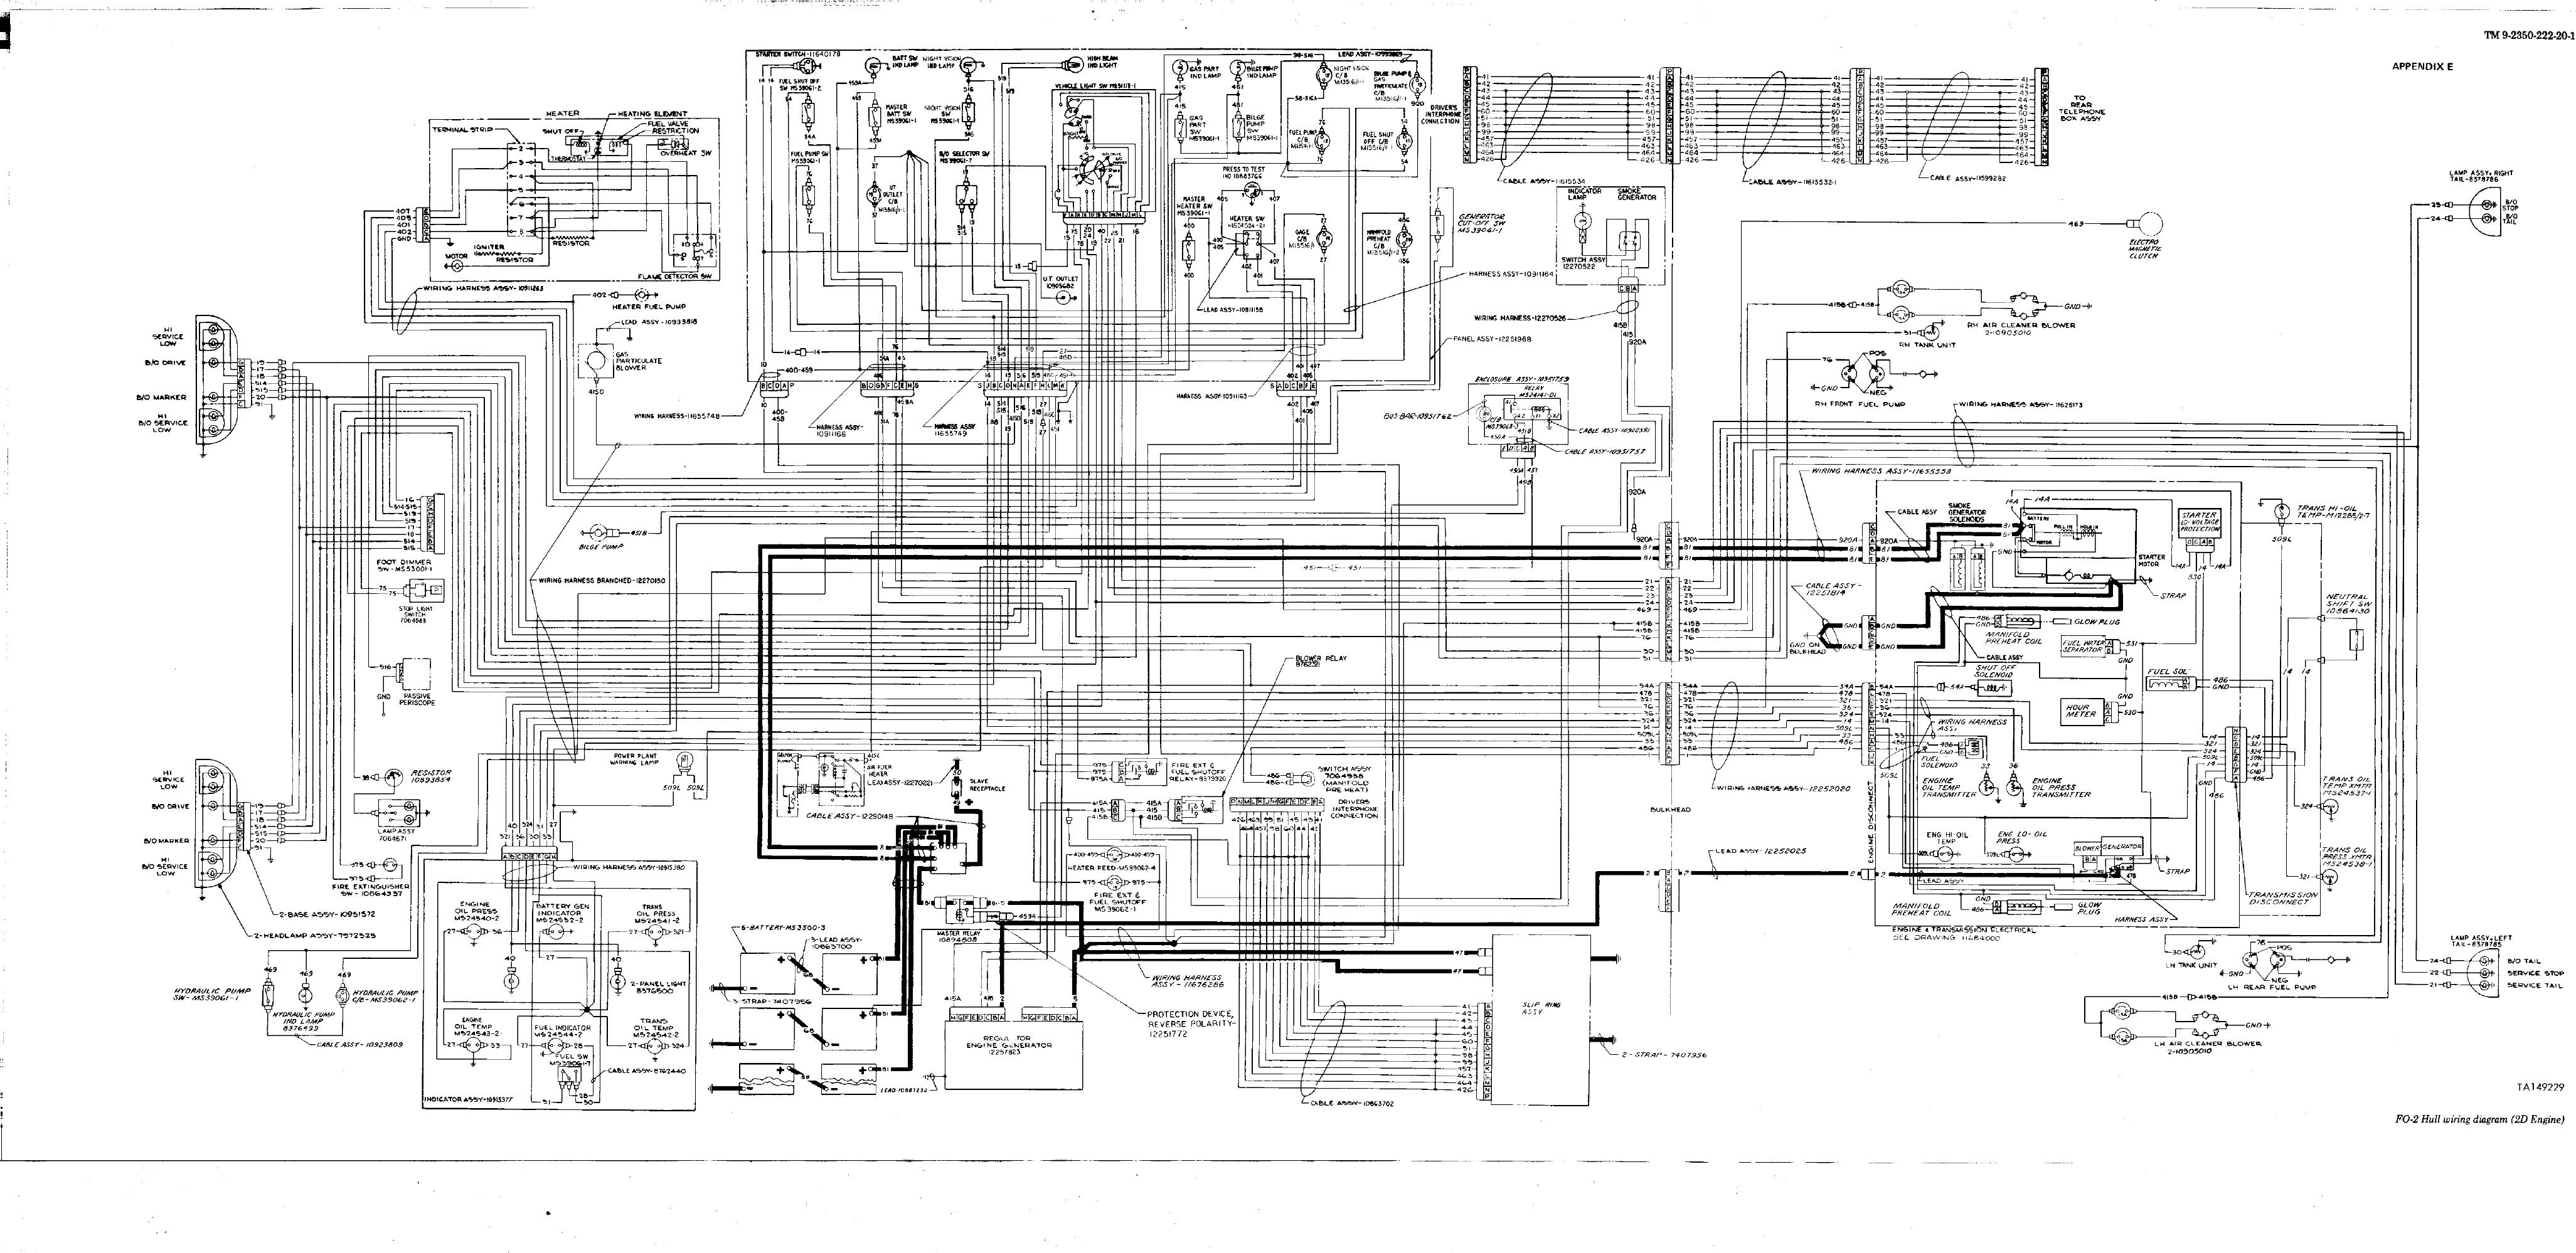 TM 9 2350 222 20 1 50914im fo 2 hull wiring diagram (2d engine) 2d wiring diagram at gsmx.co